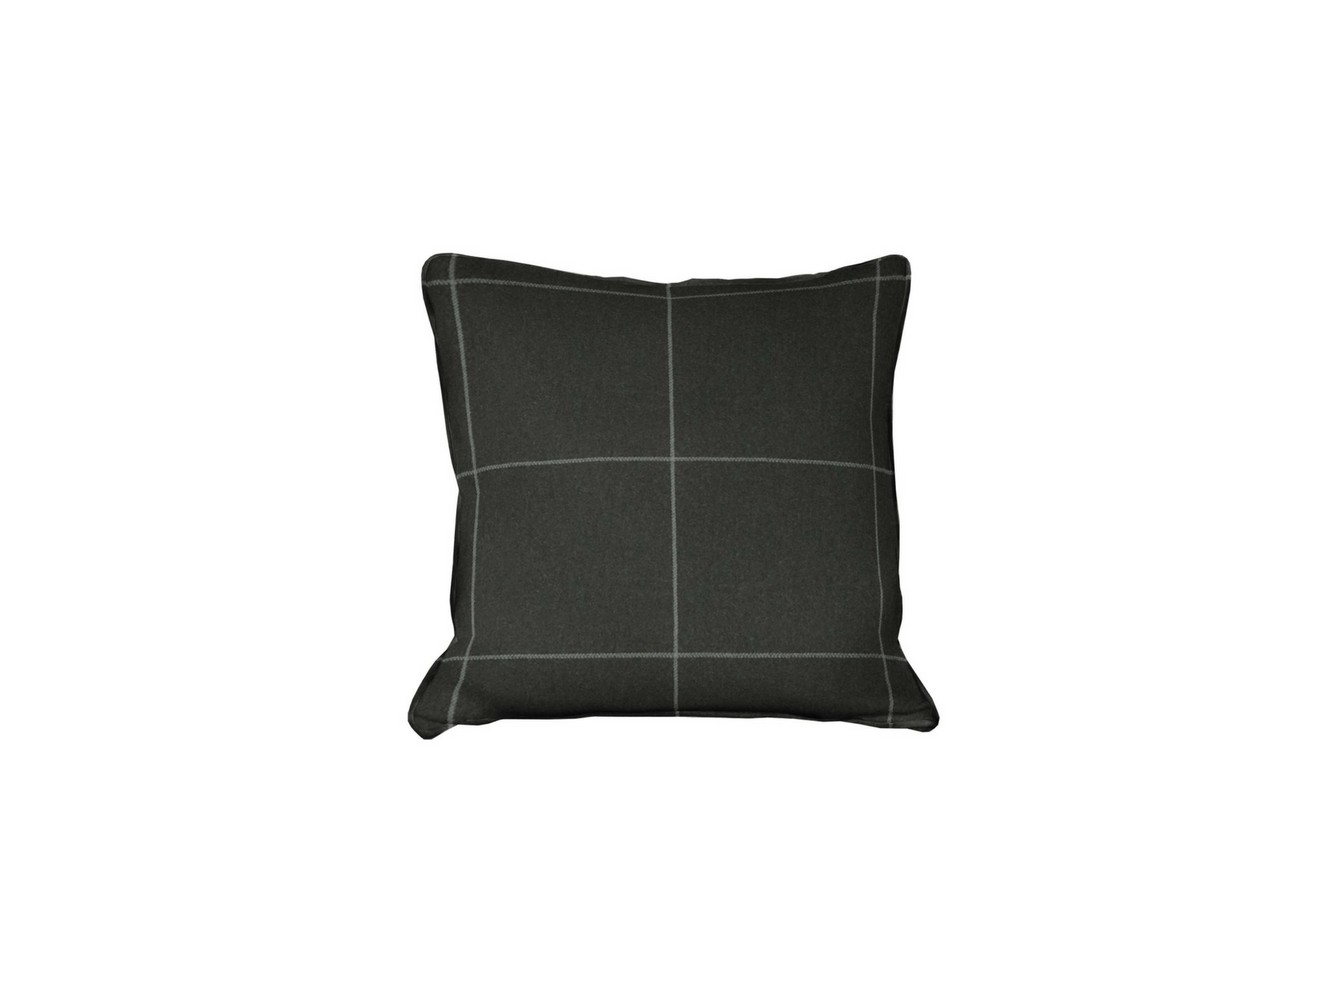 Extra Scatter Cushions - Fabric Alderney Charcoal